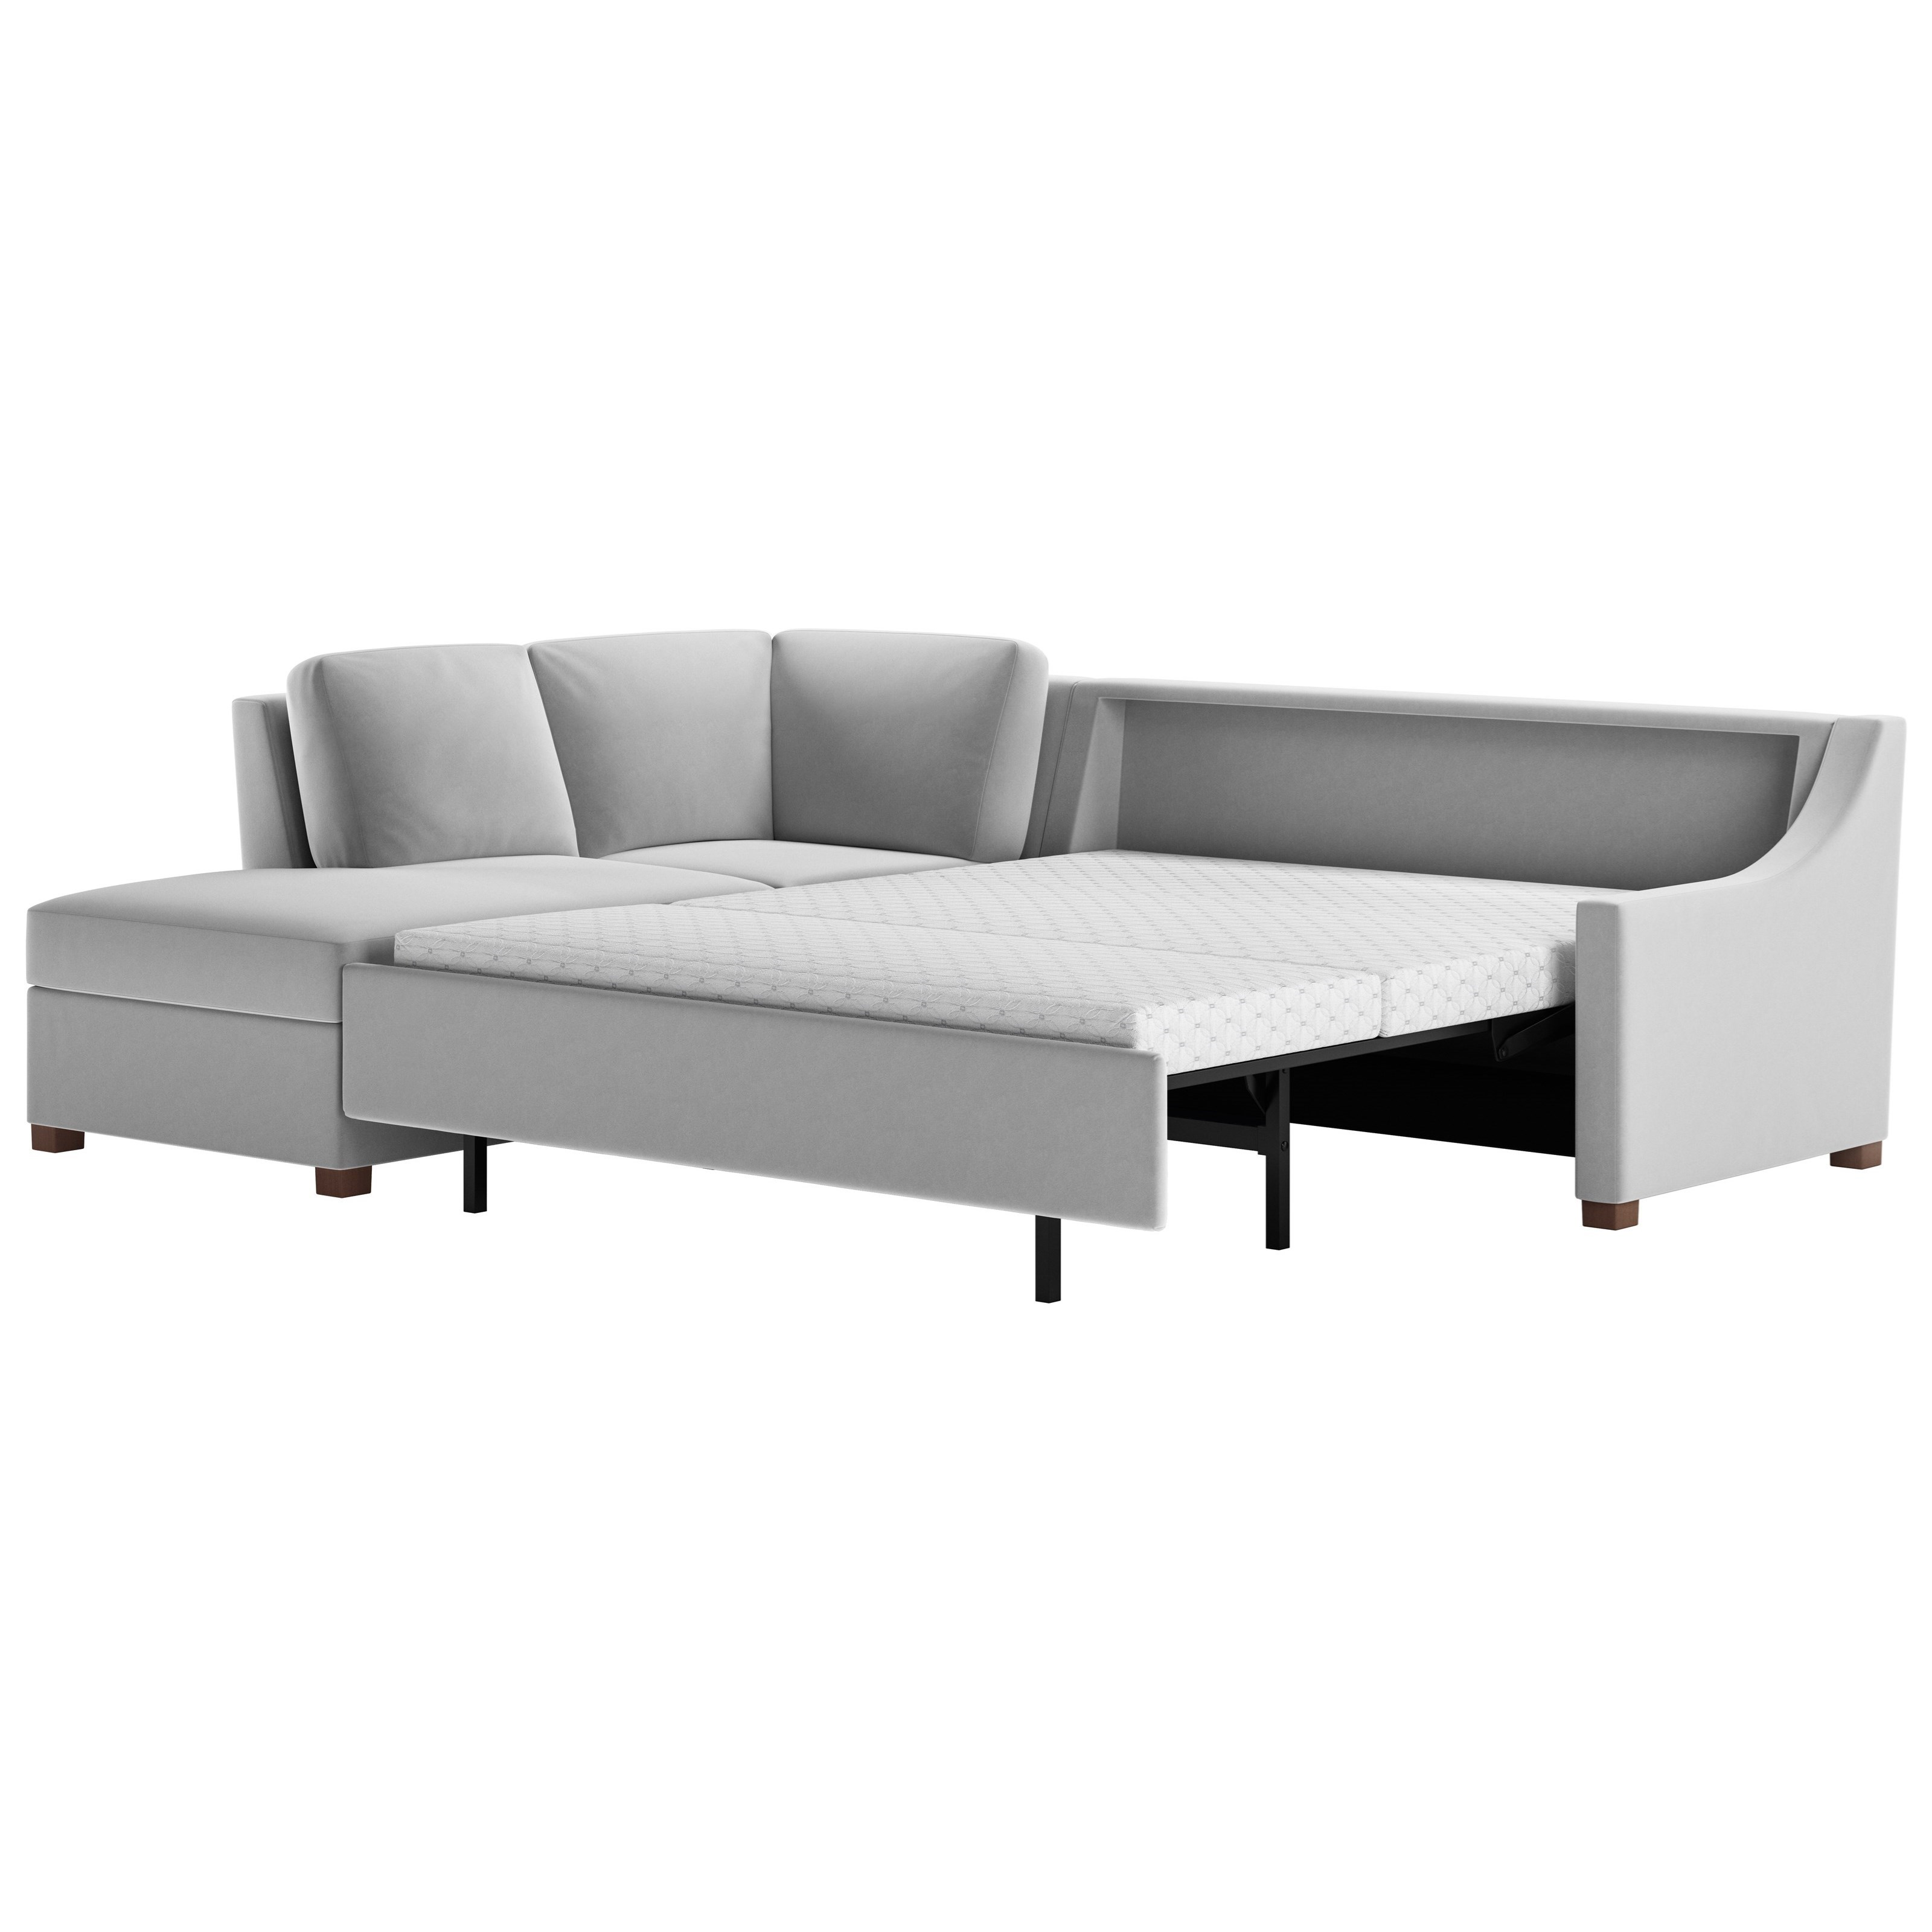 American Eather Furniture: American Leather Perry Two Piece Sectional Sofa With Queen